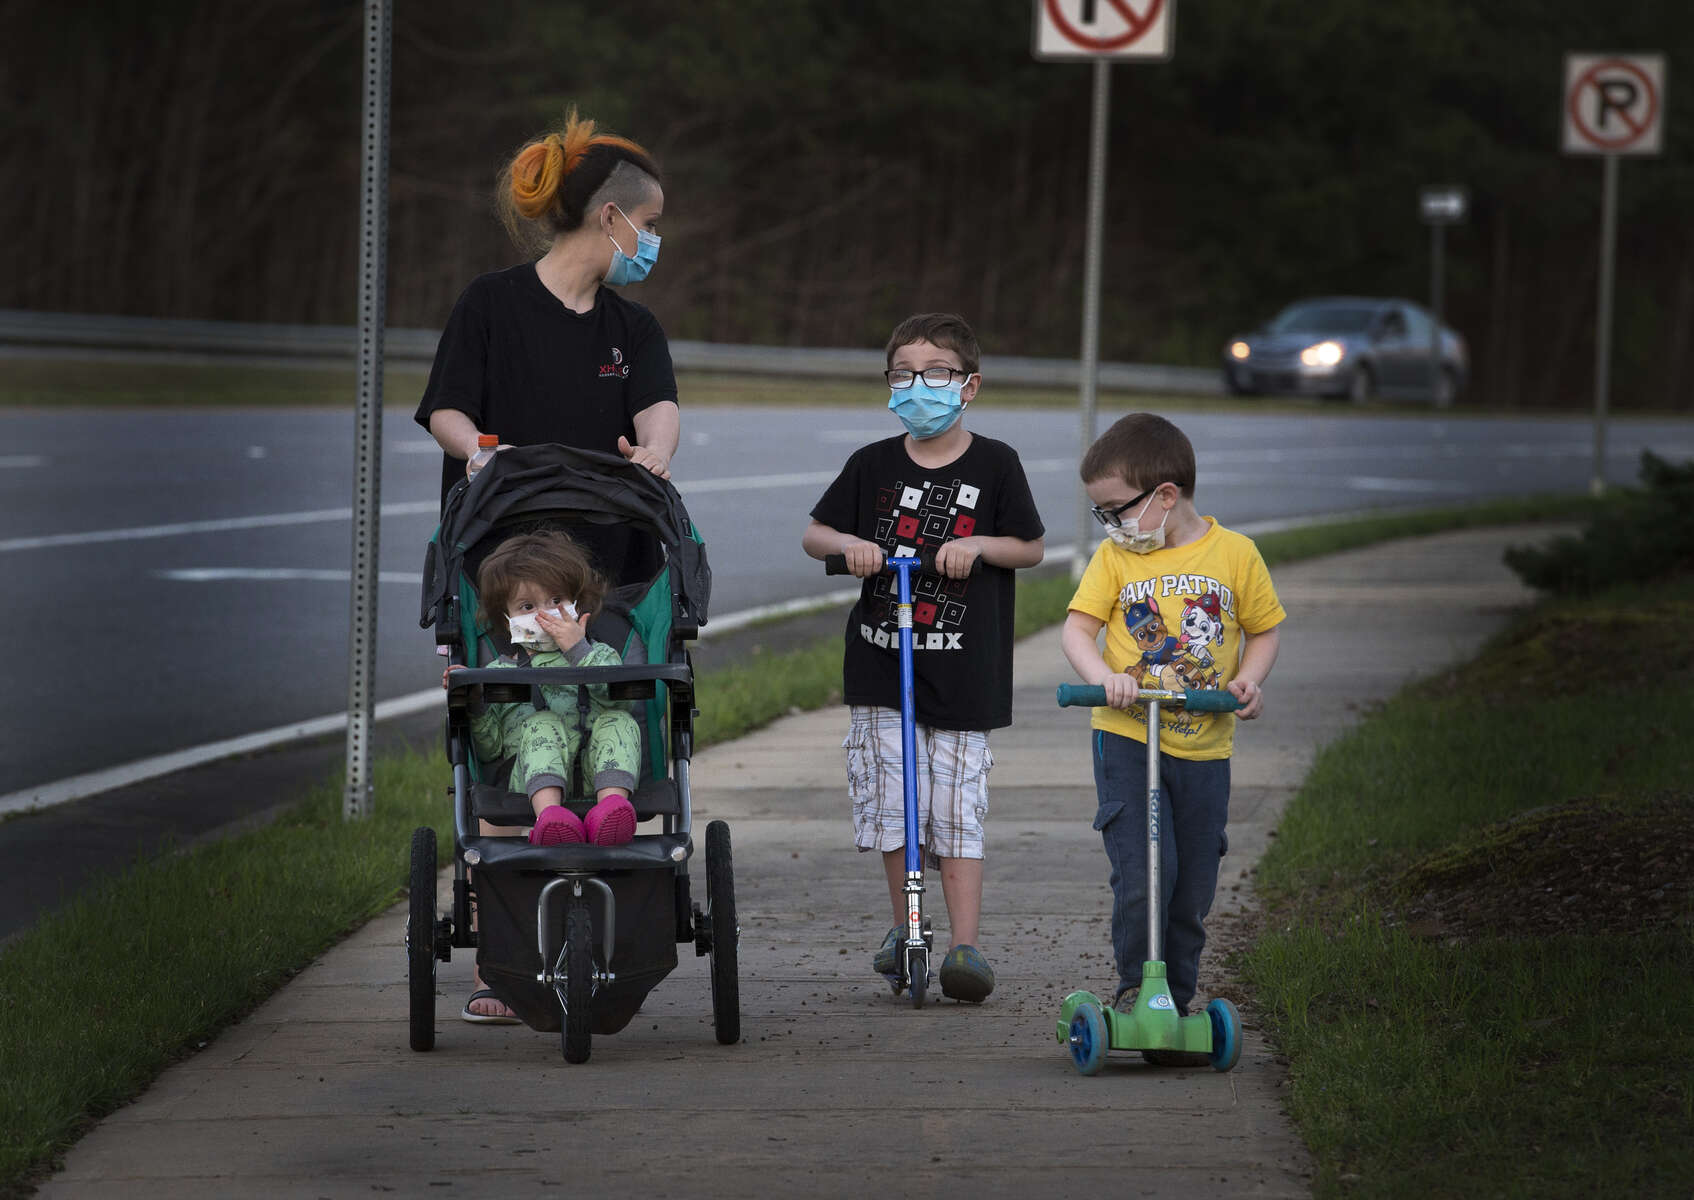 Stephanie Barker, 32, walks with her children along a parkway on a Spring evening, all wearing face masks as protection auto guard against the COVID-19 virus pandemic.